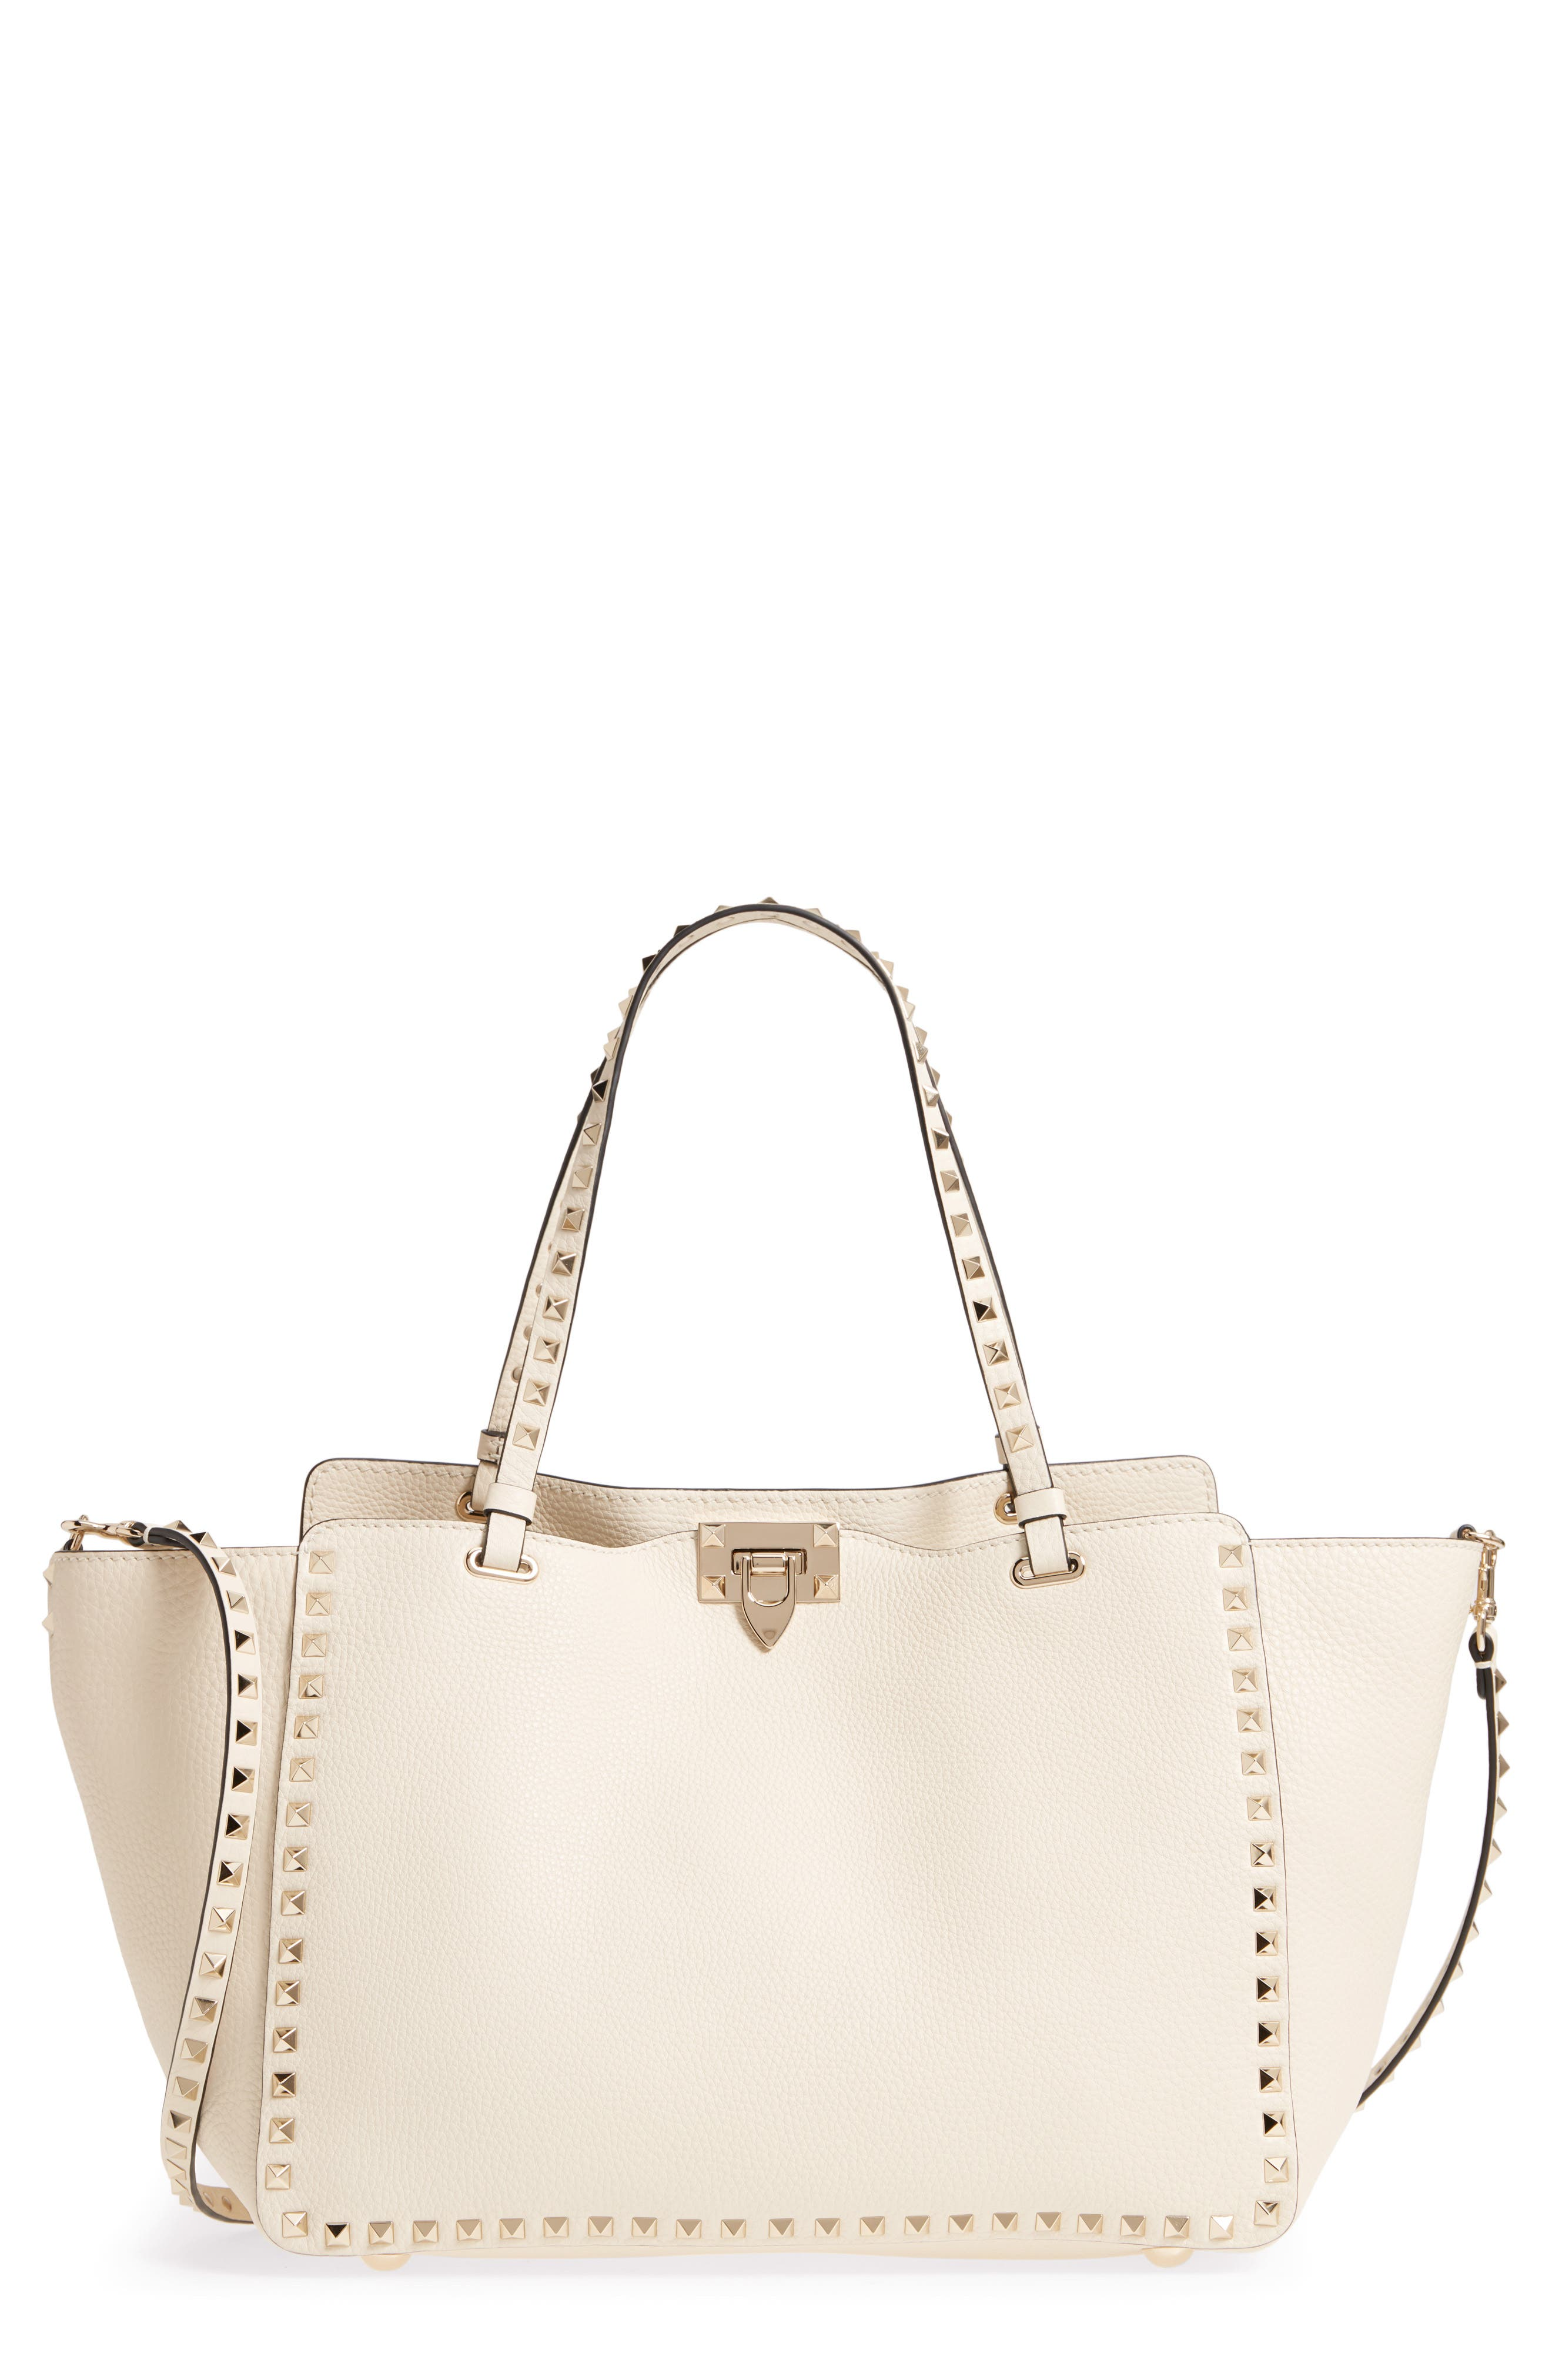 Medium Rockstud Leather Double Handle Tote,                         Main,                         color, IVORY